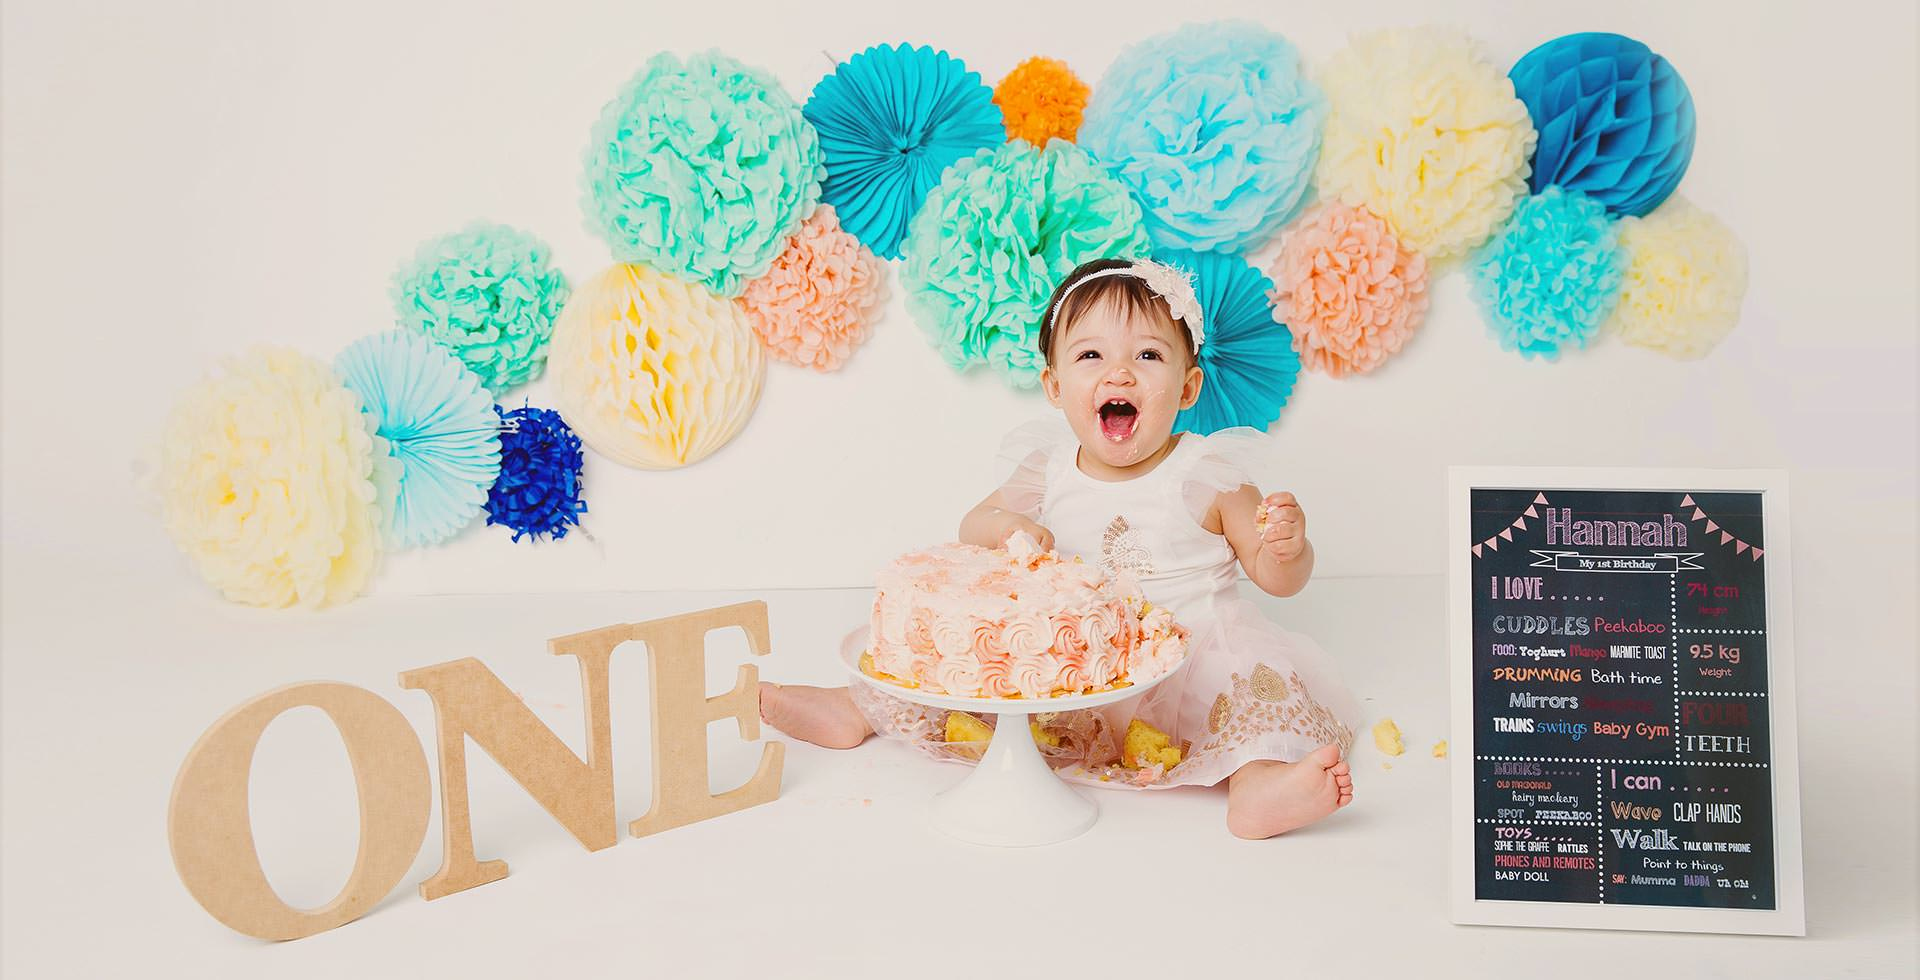 Cake Smash Portrait Photo Studio